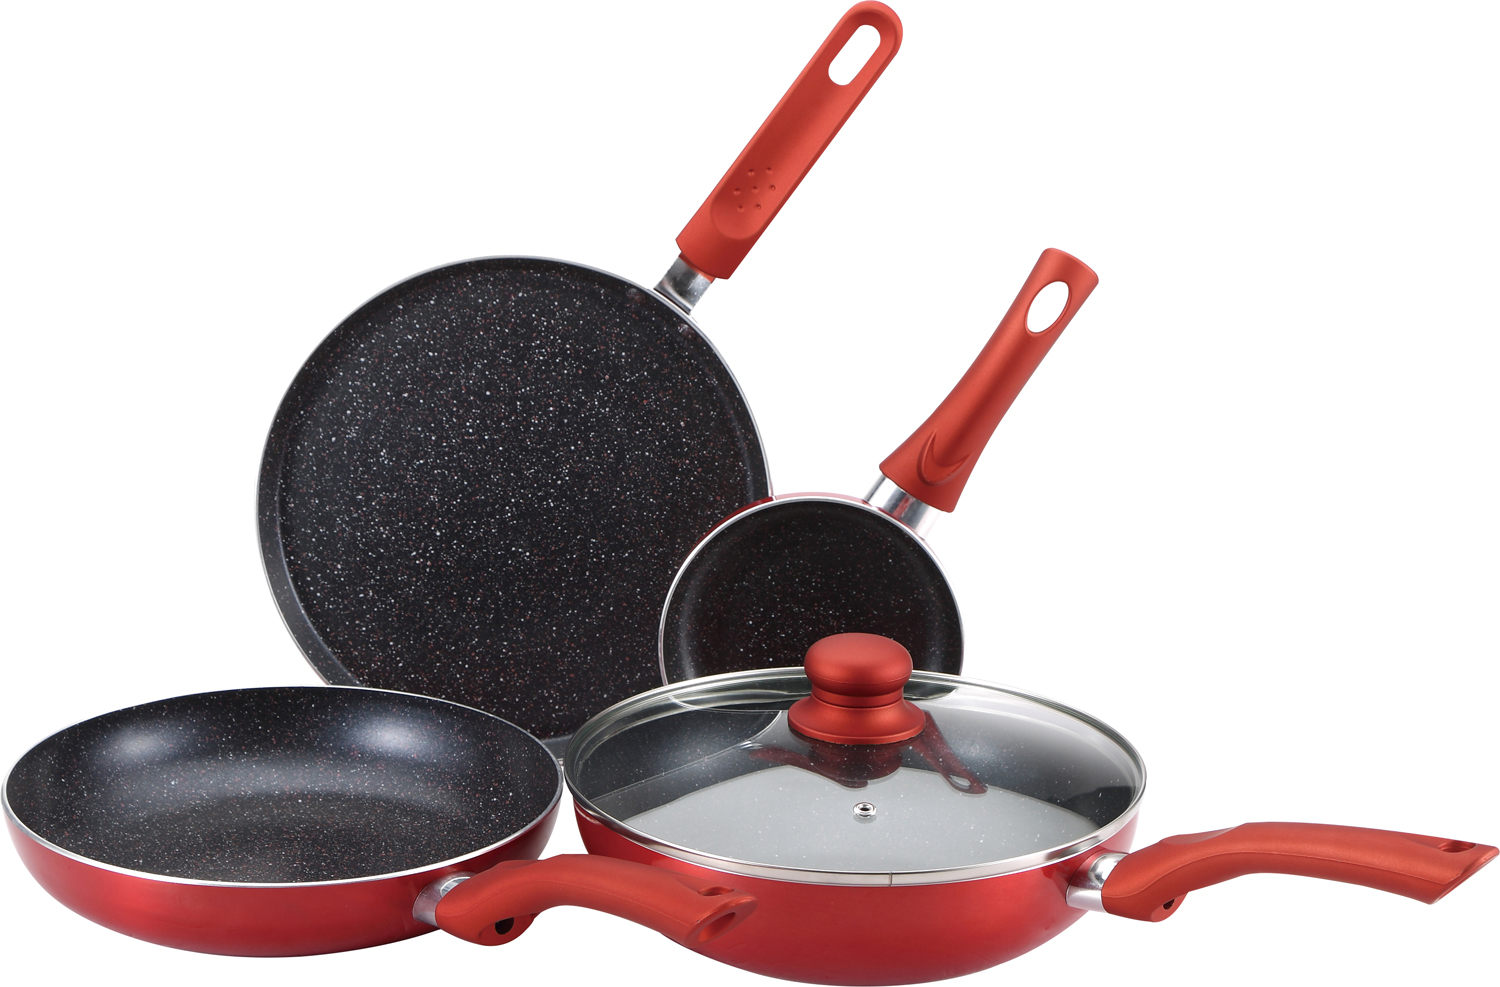 Esprit - 5 Piece Cookware Set Aluminium Cookware in Red Colour by Bergner